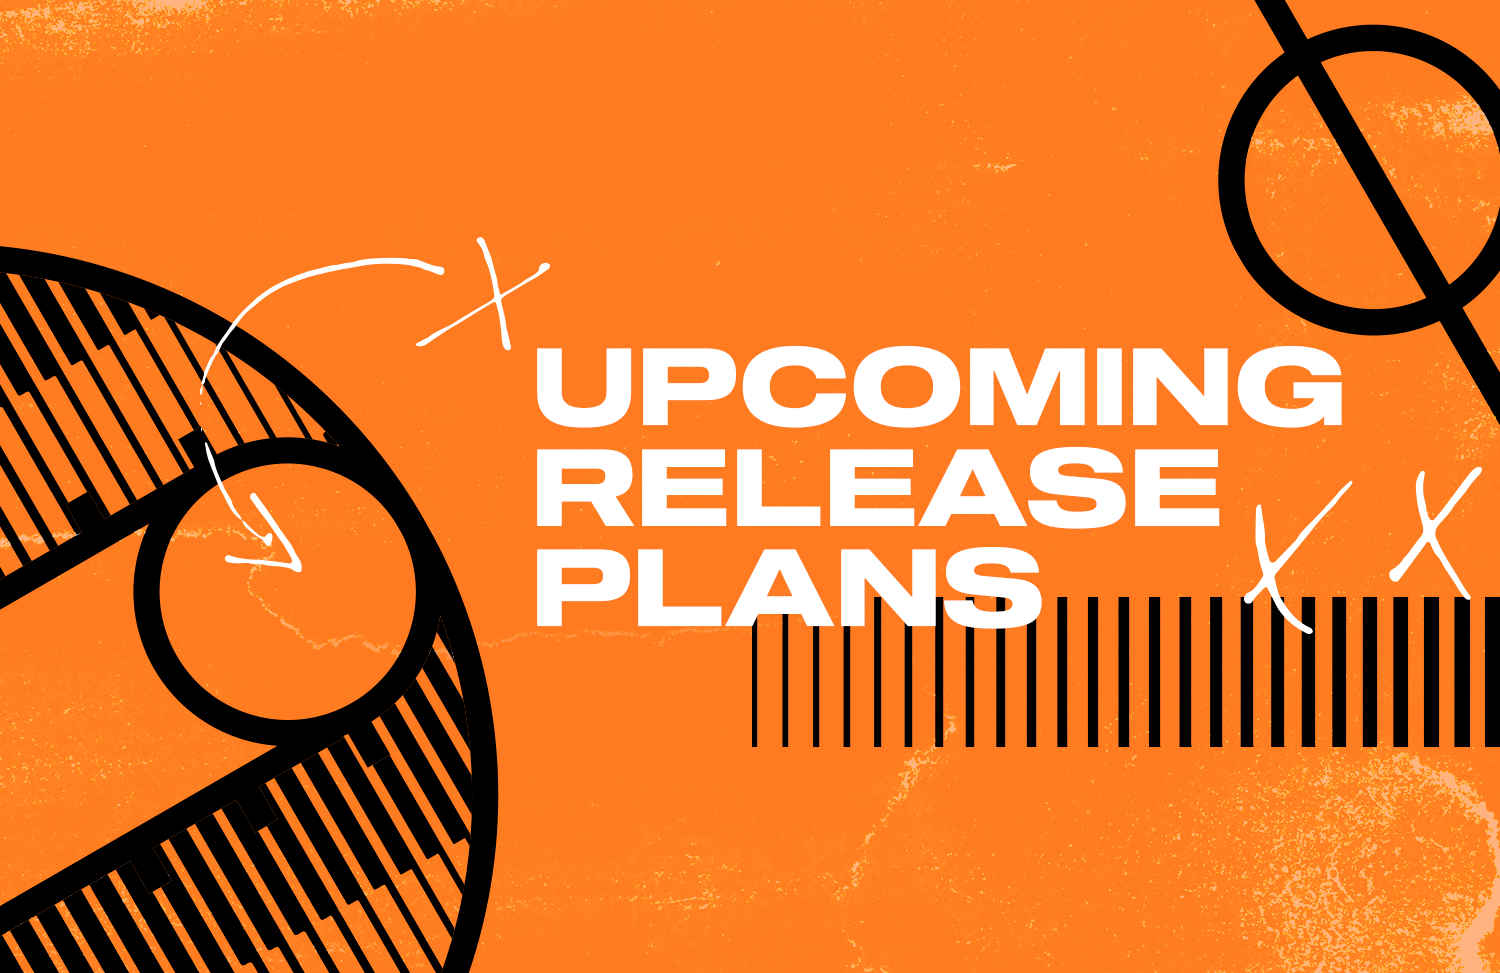 Upcoming release plans revealed